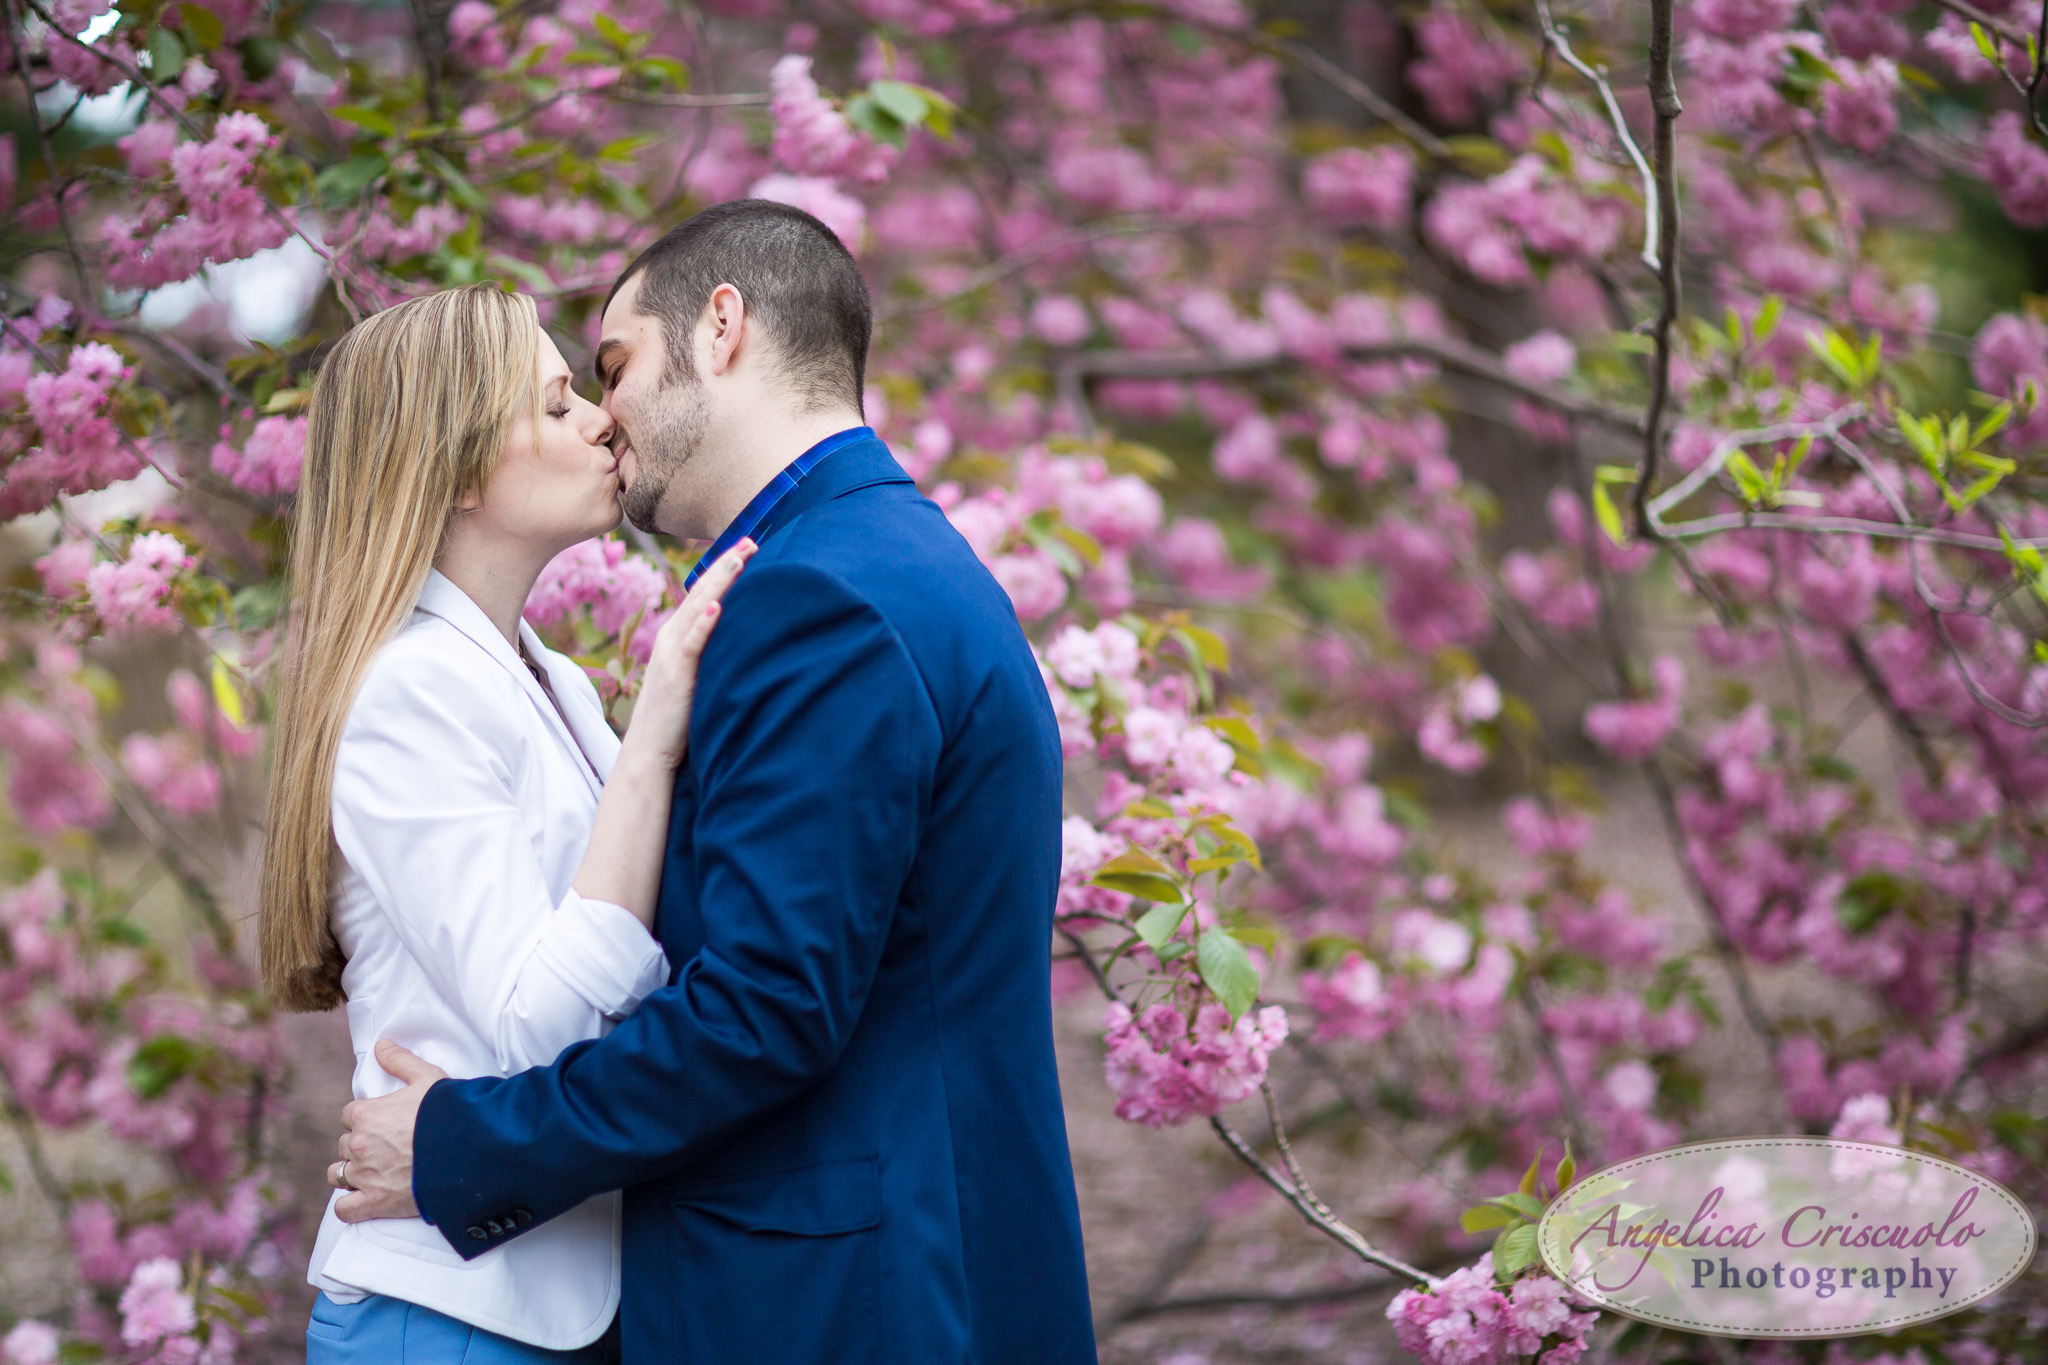 New_York_Engagement_Photographer_Cherry_Blossoms_Central_Park_NYC_Photography_Spring-1.jpg